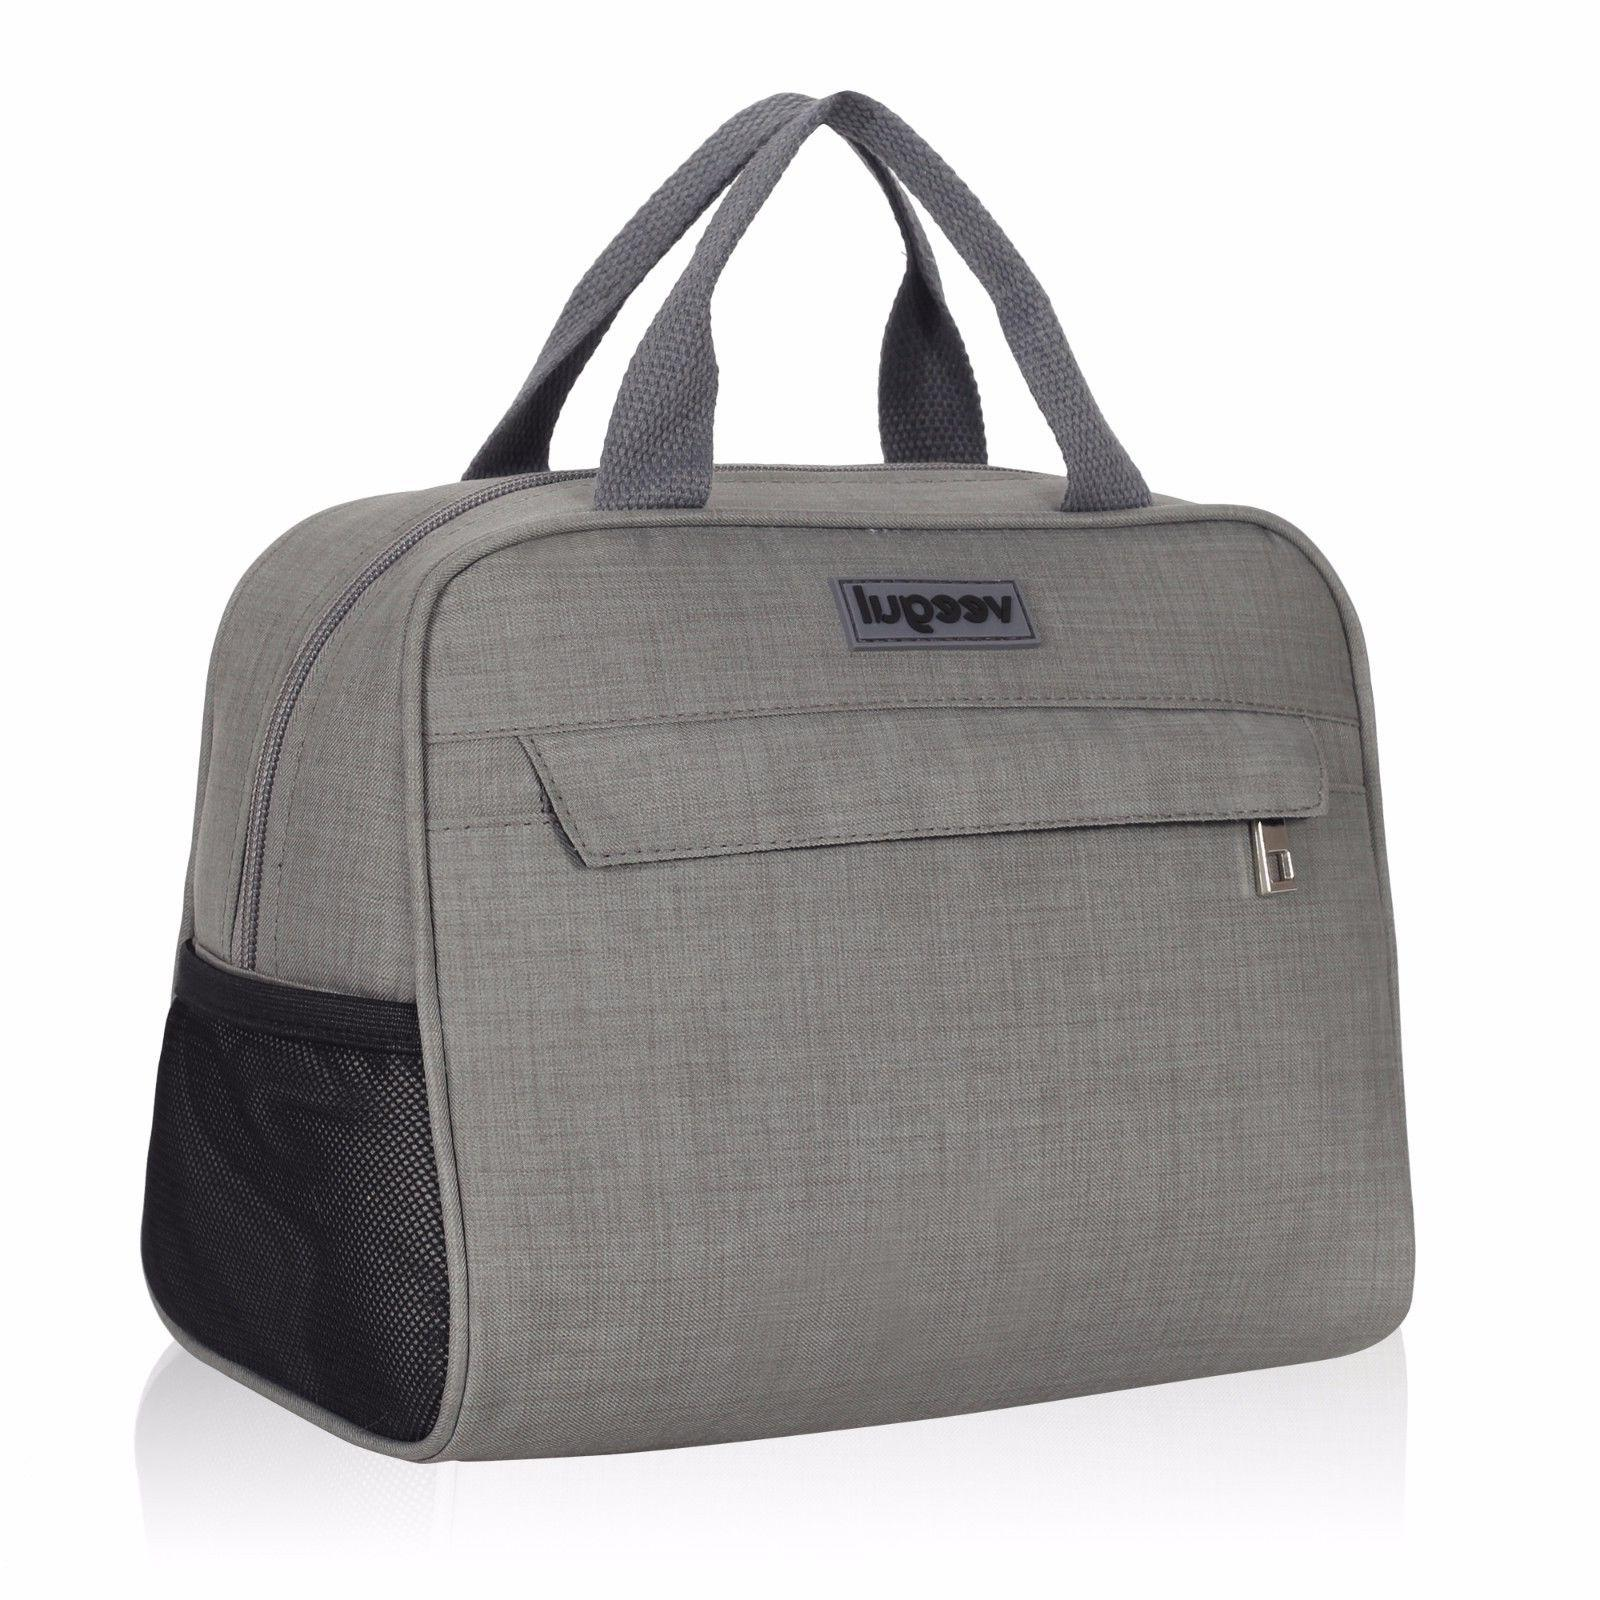 insulated lunch bag for men and women